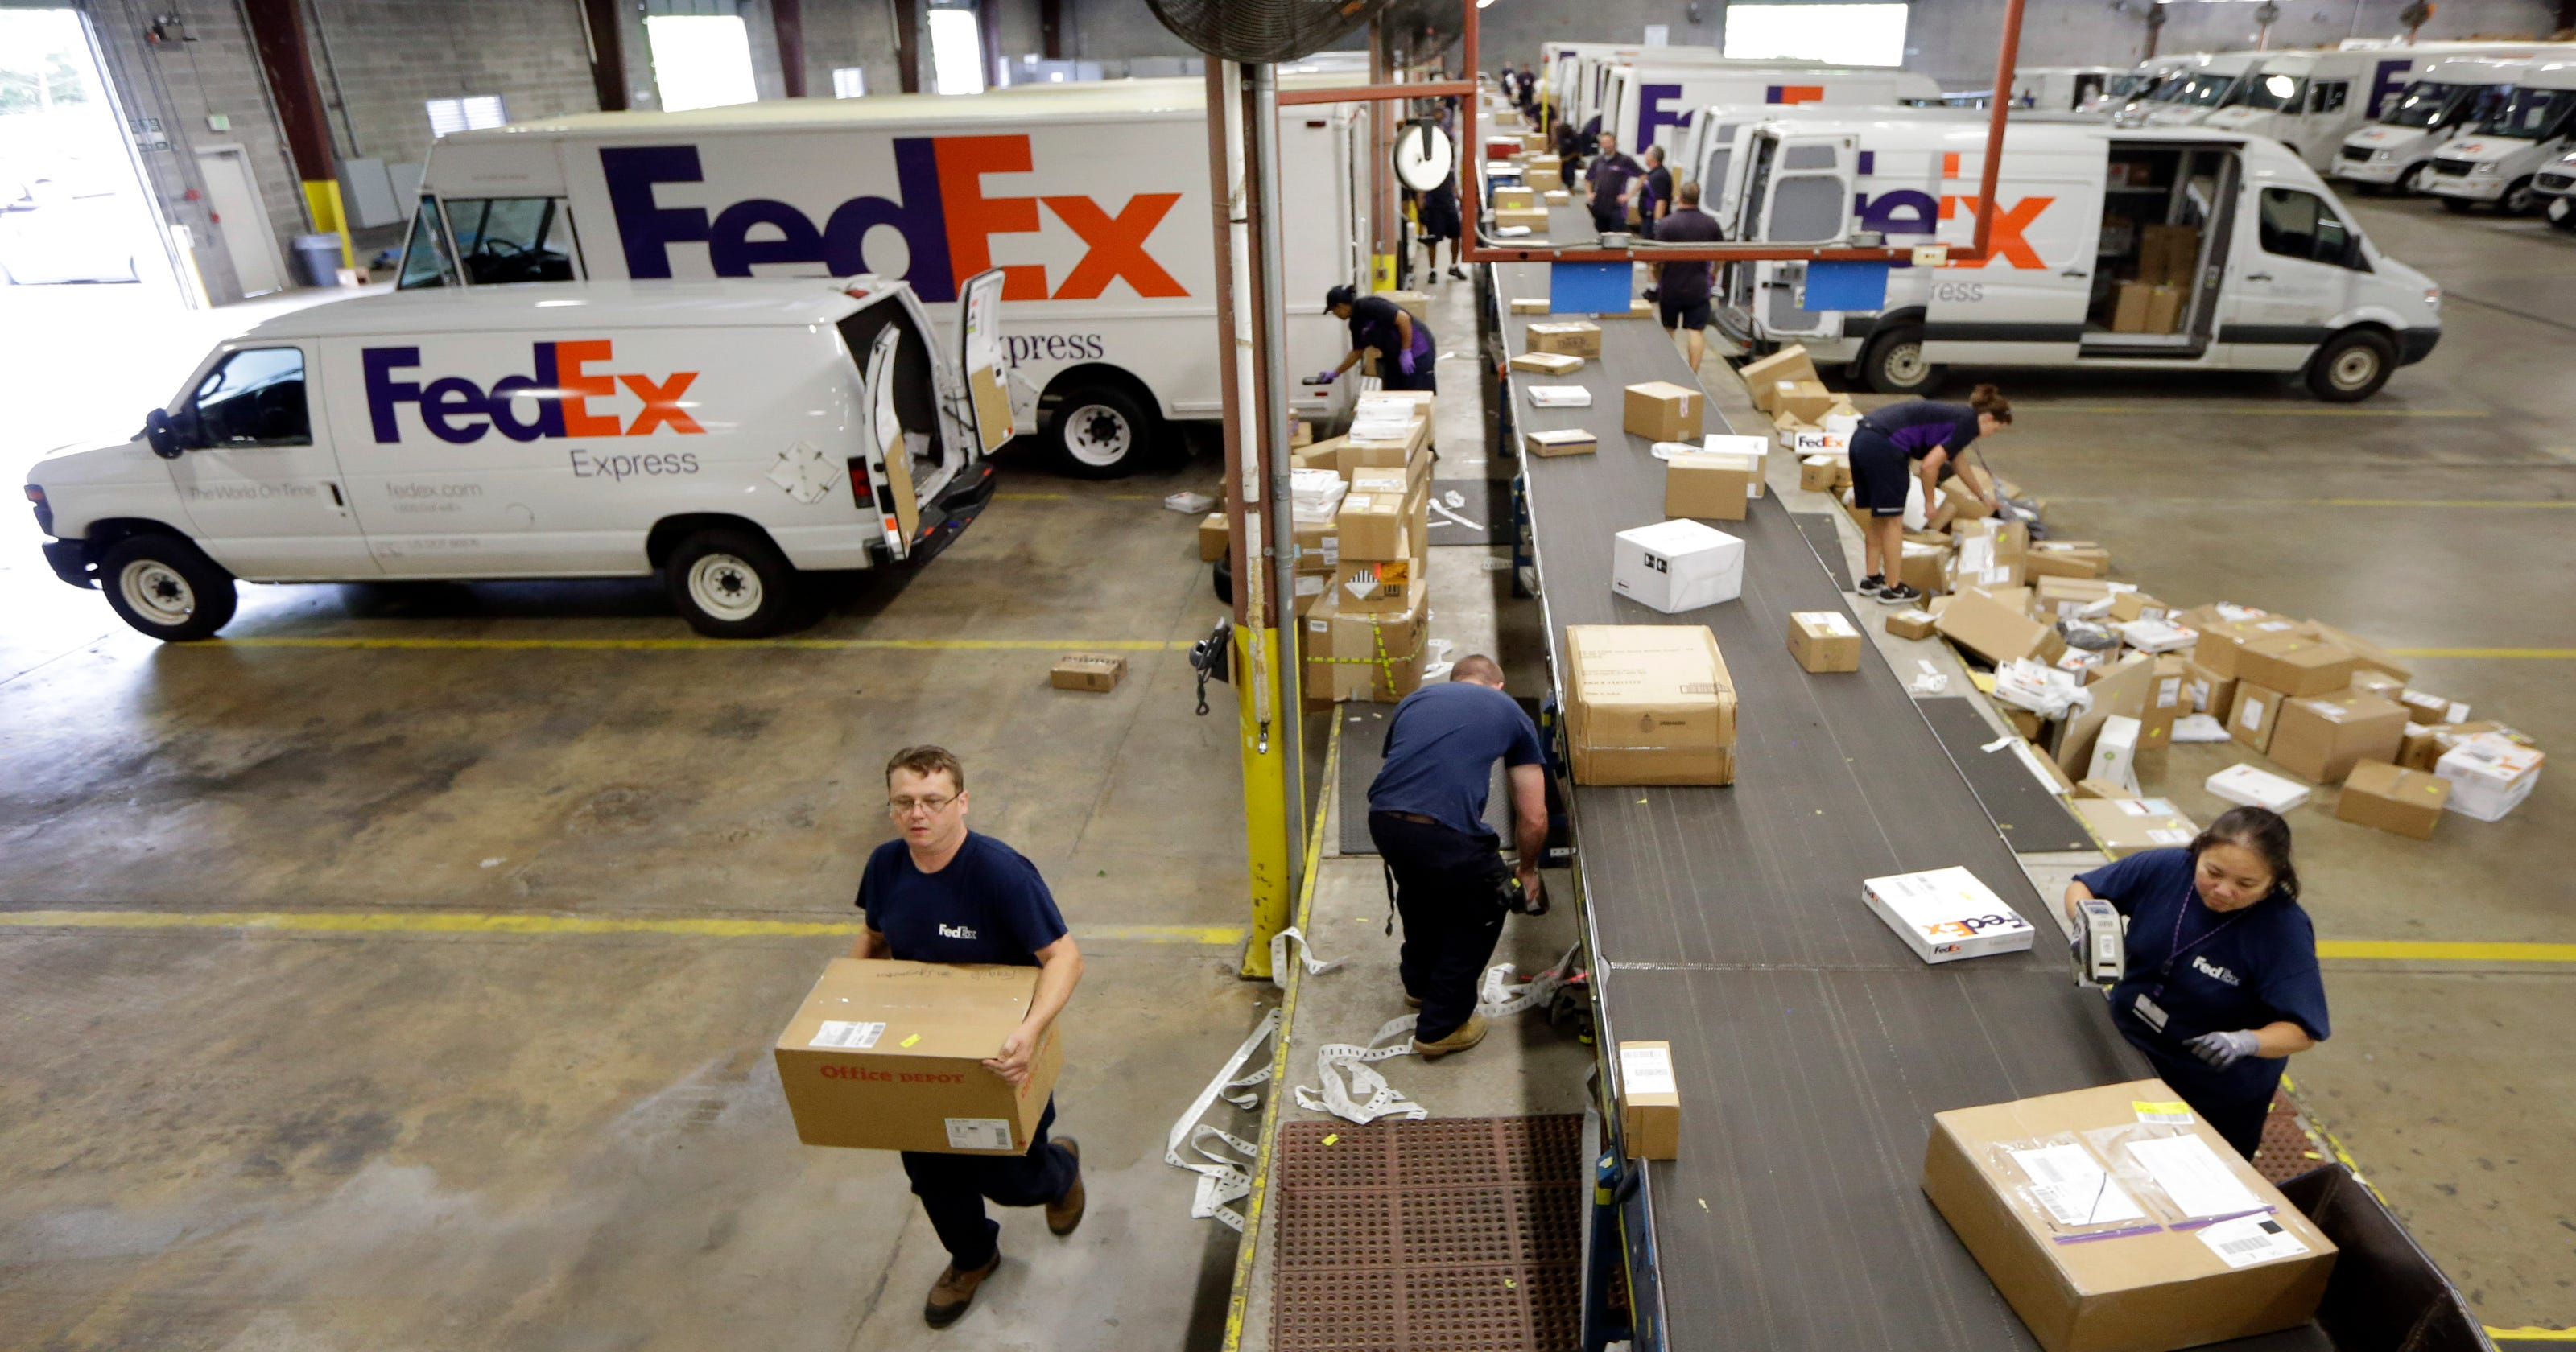 where to buy naprosyn fedex delivery